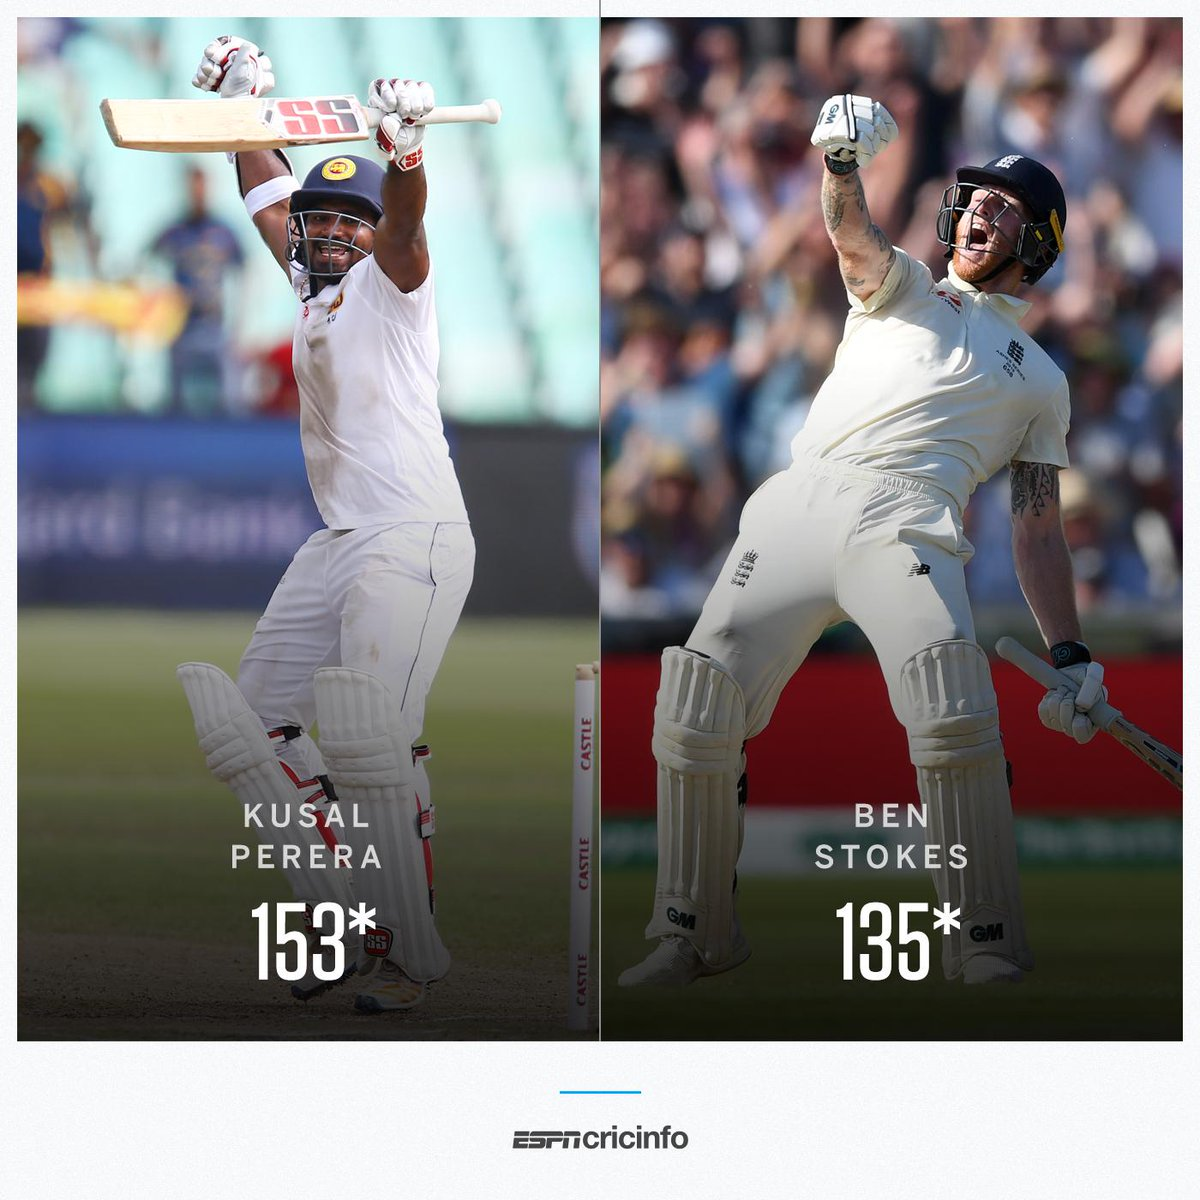 ✅ An unbeaten fourth-innings hundred ✅ An unbroken tenth-wicket stand of 75+ runs ✅ A stunning one-wicket win Who did it better in 2019: Kusal Perera or Ben Stokes? es.pn/30ucd45 #Ashes